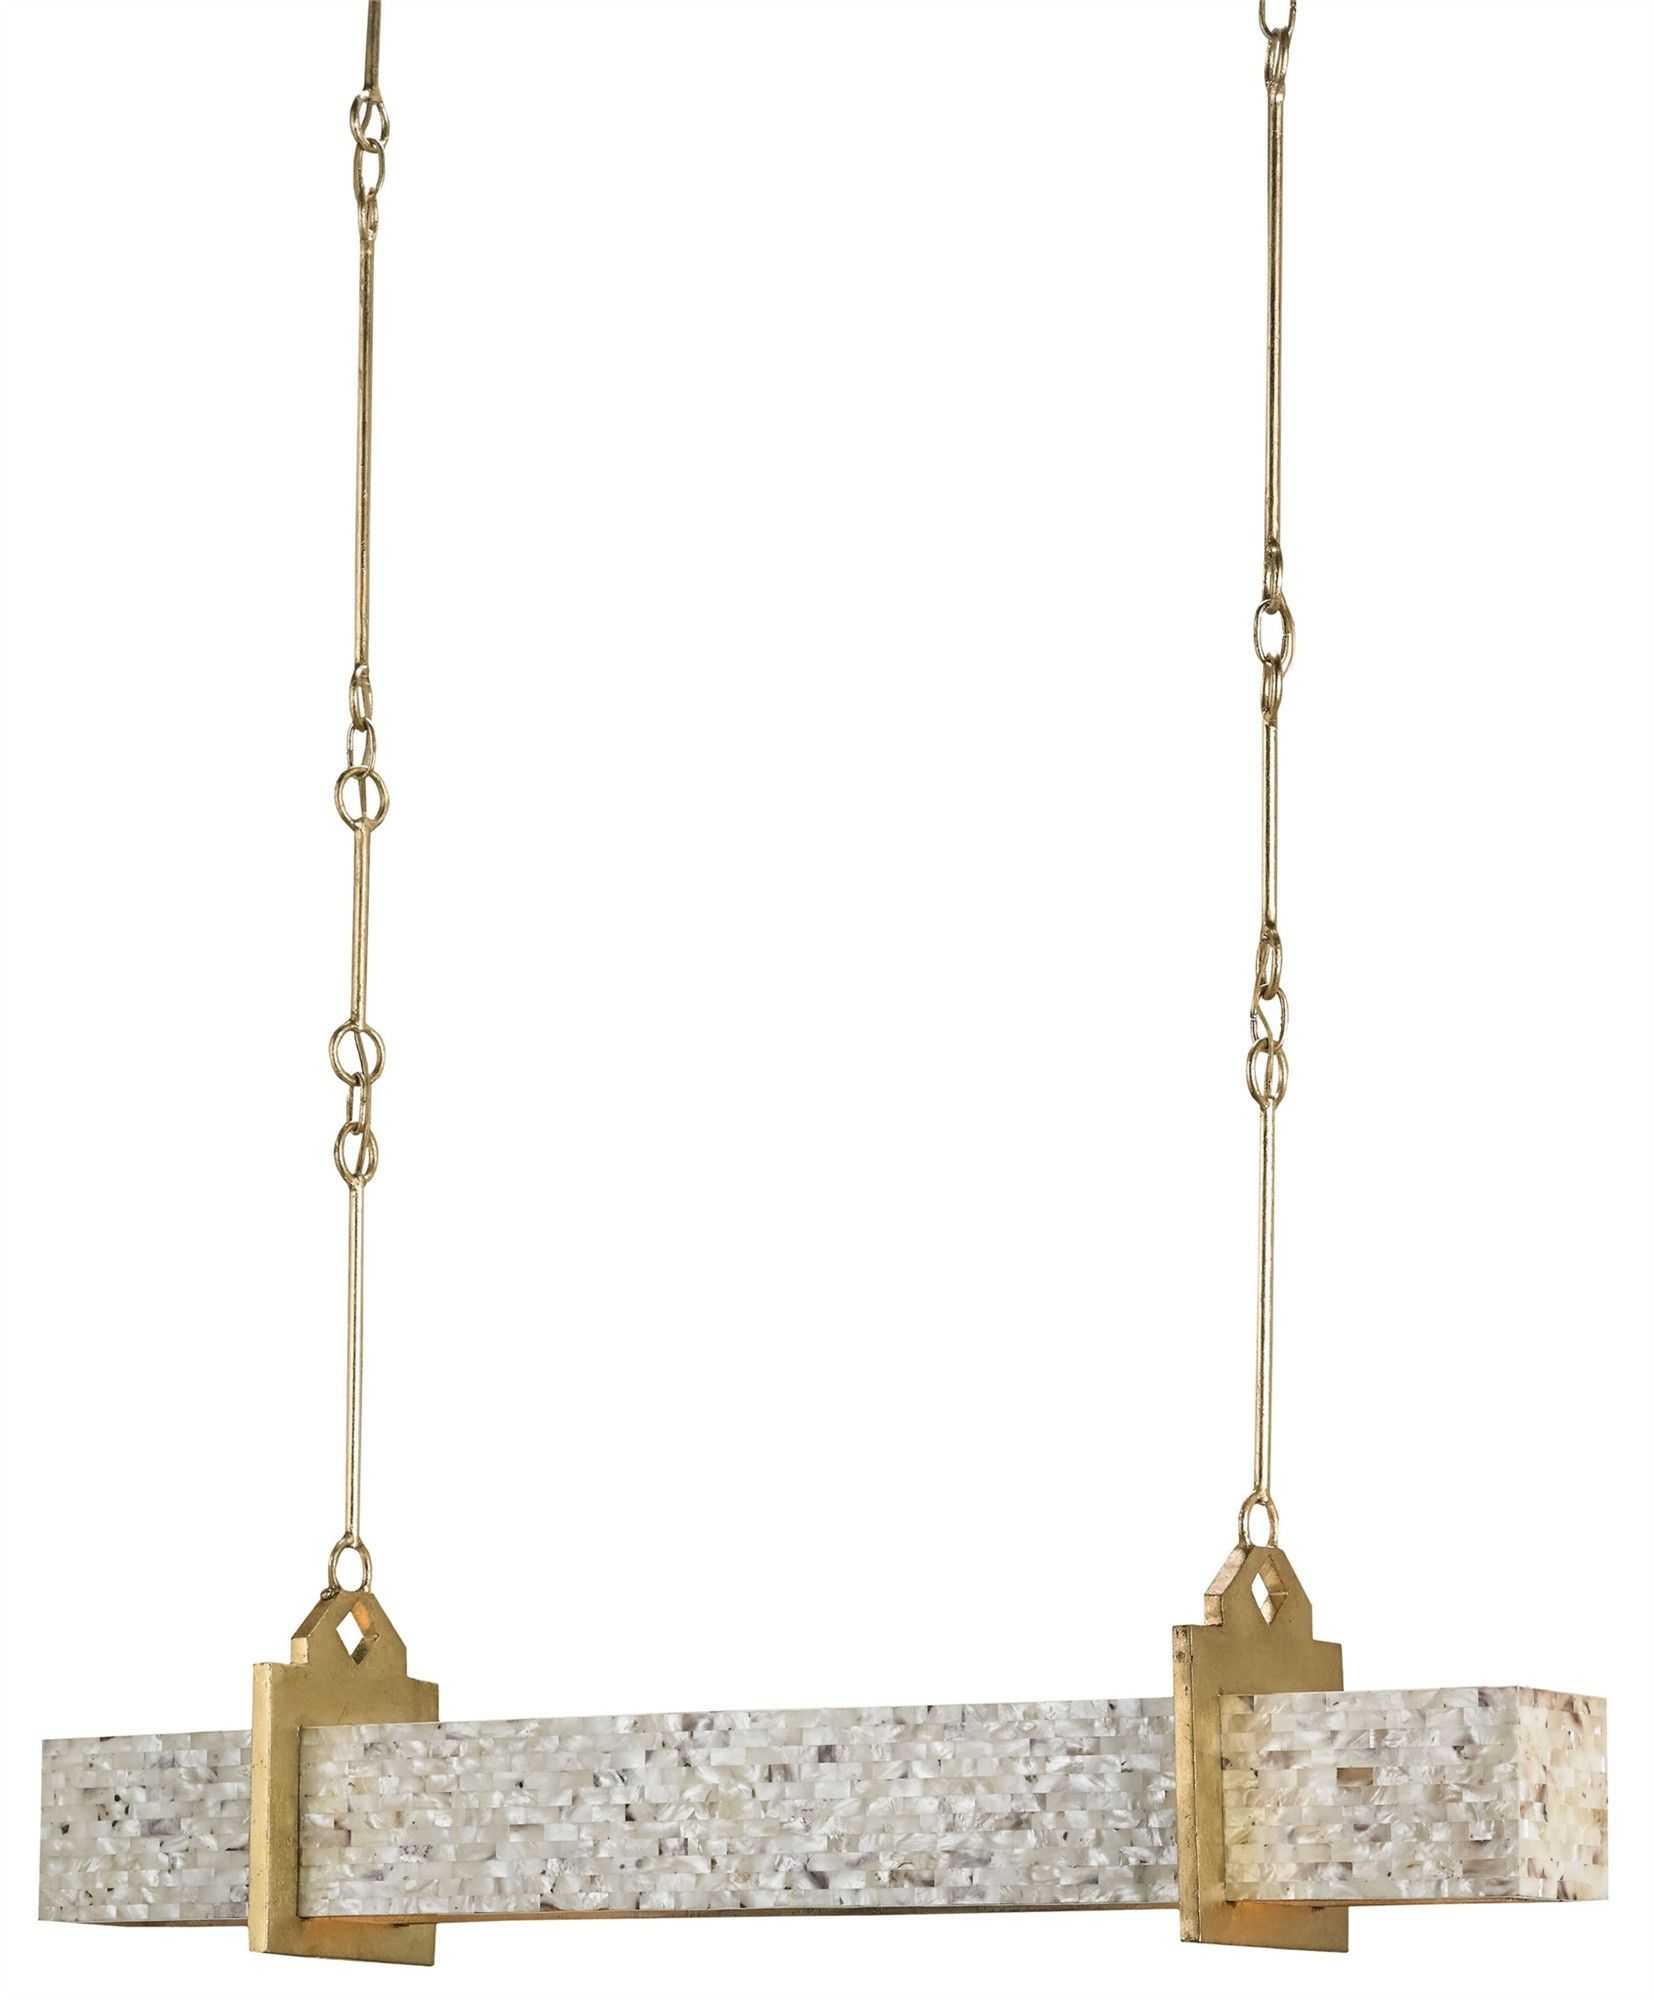 Oasis Rectangular Chandelier design by Currey & Company